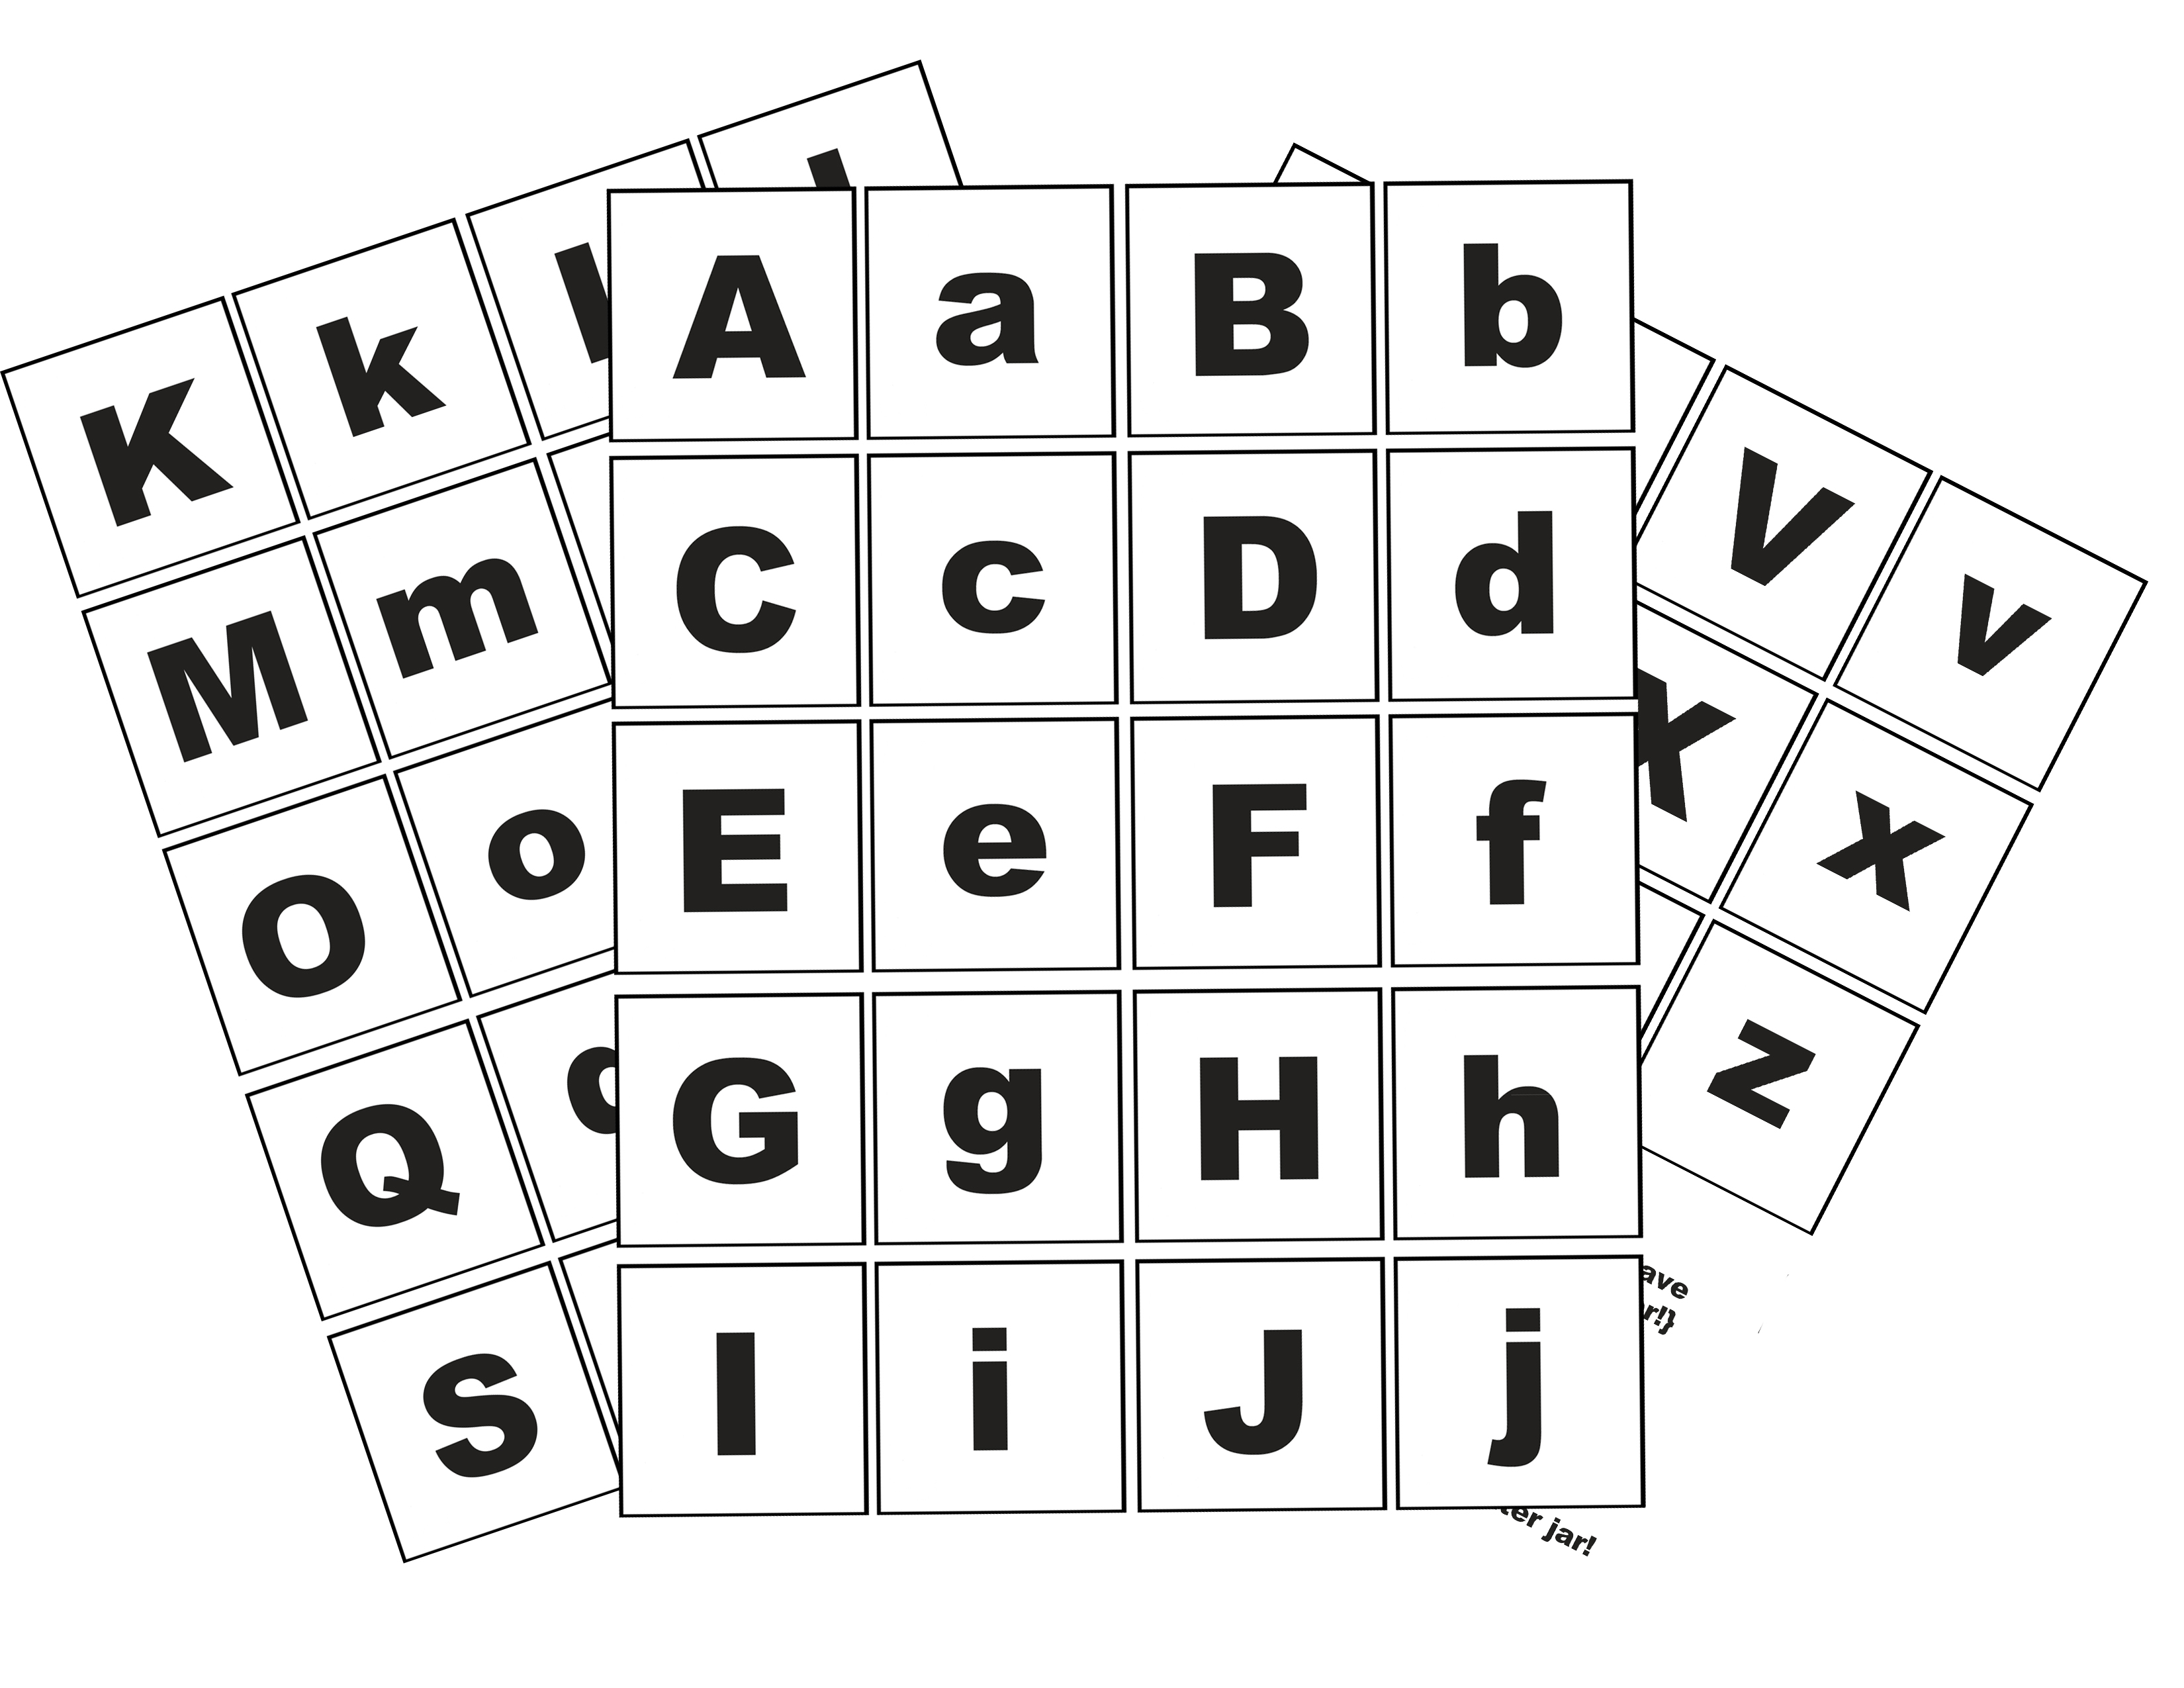 image regarding Letter Tiles Printable referred to as Read through It, Spell It, Generate It Printable